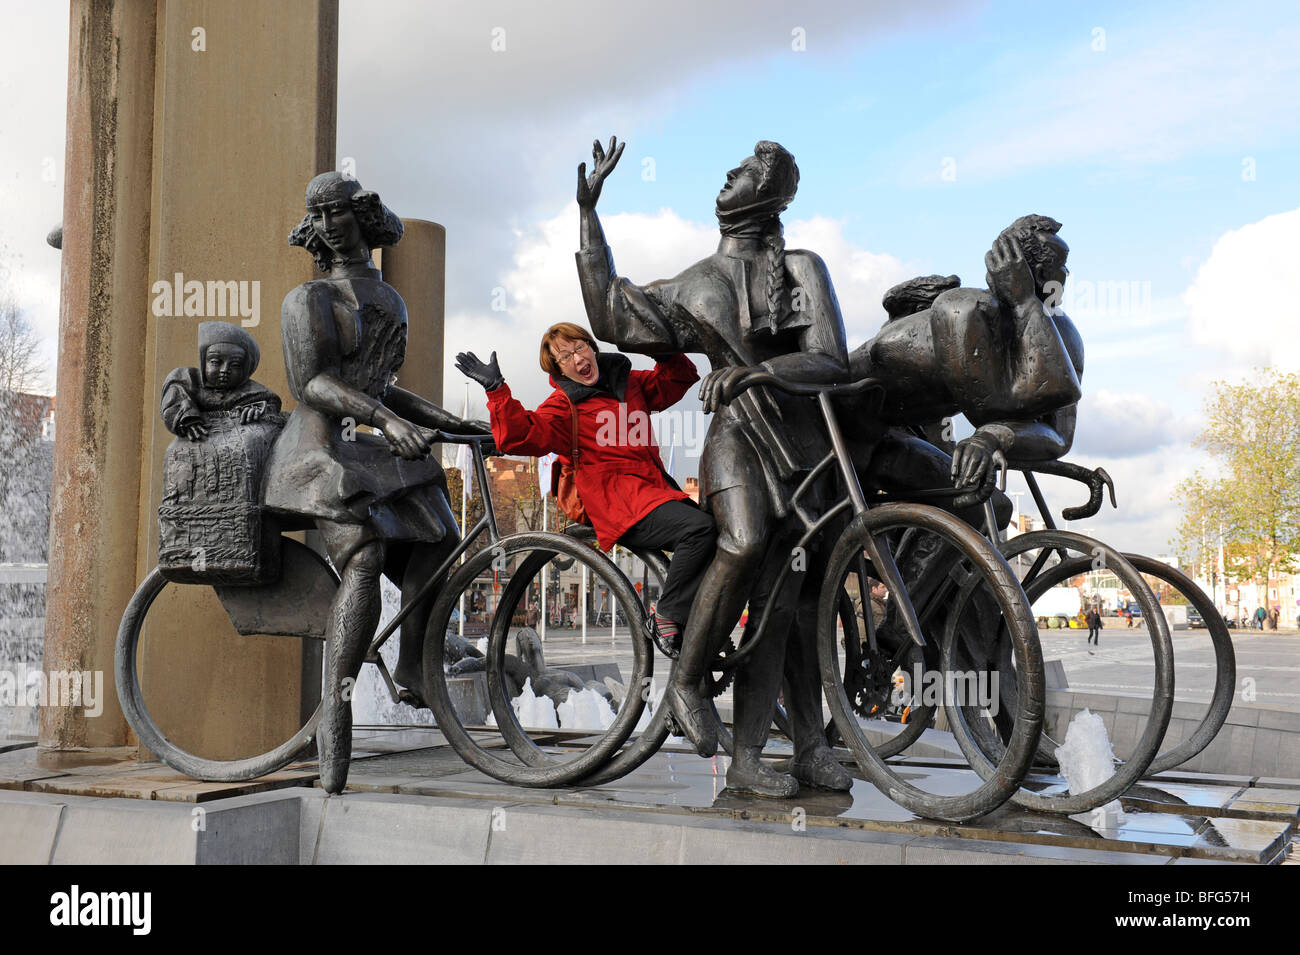 Woman tourist with Statues in The Zand square at Bruges in Belgium Europe - Stock Image